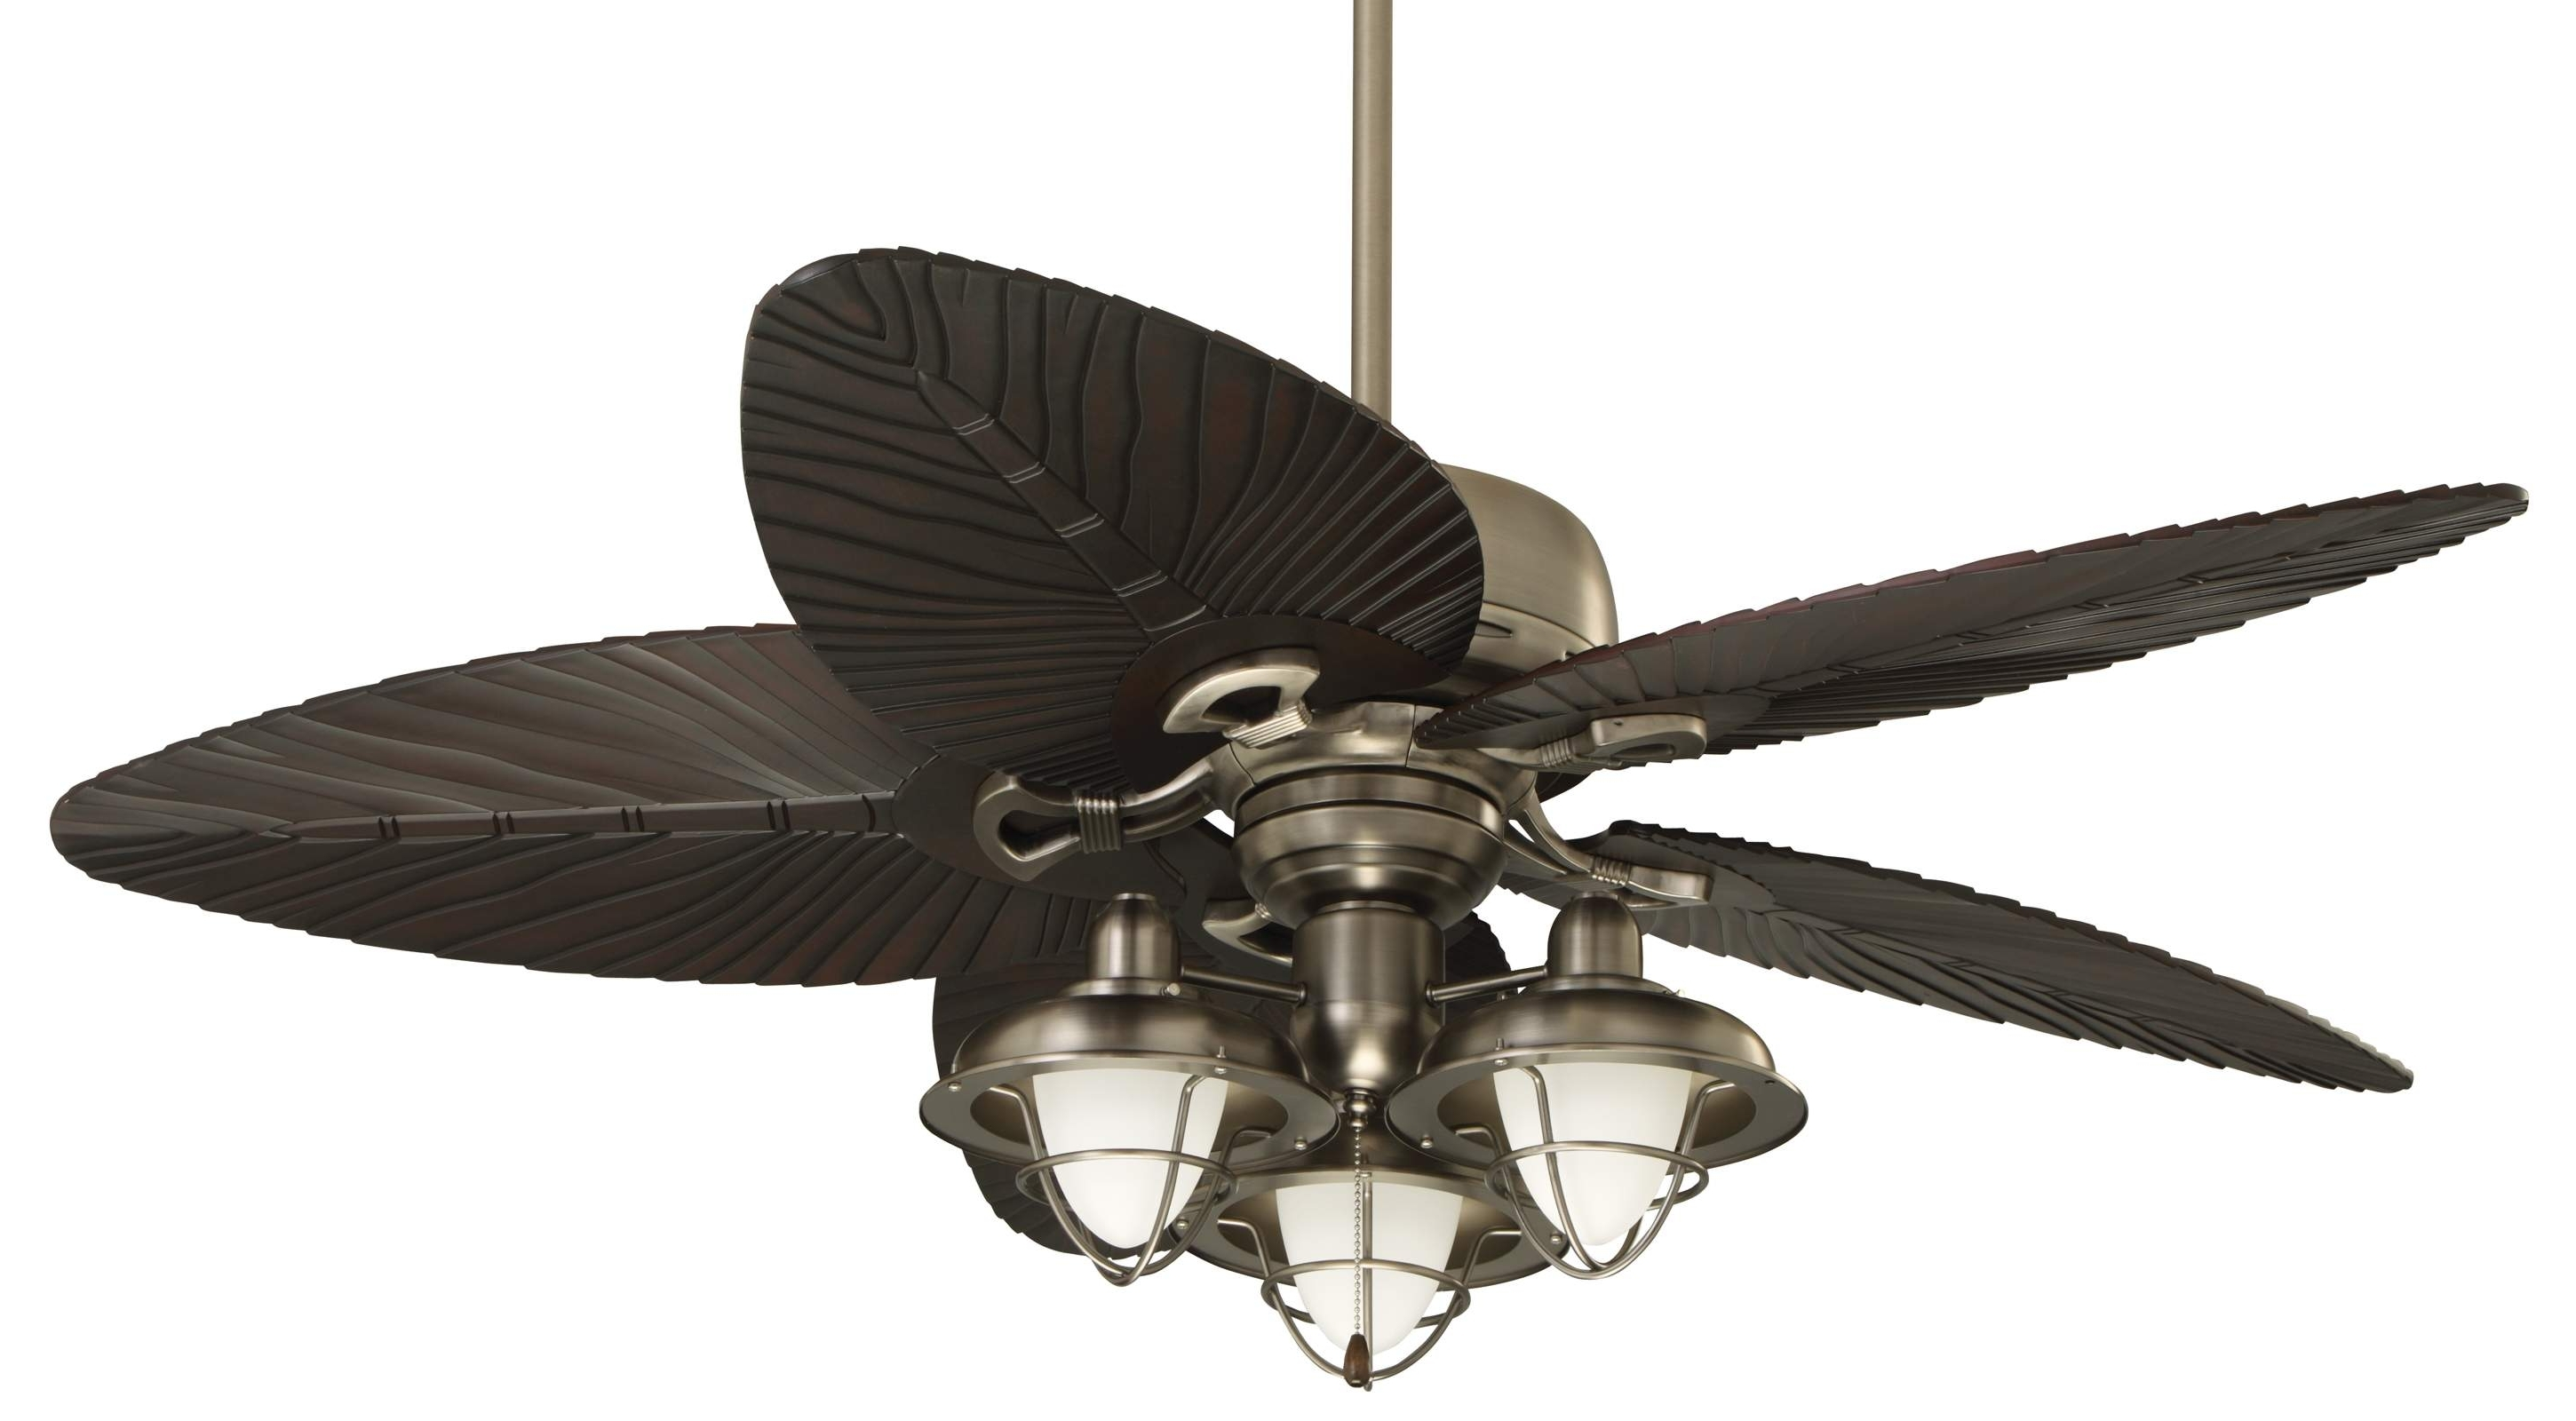 Decor: Bring An Island Look Into Your Home With Cool Ceiling Fan For Popular Outdoor Ceiling Fans At Lowes (Gallery 17 of 20)